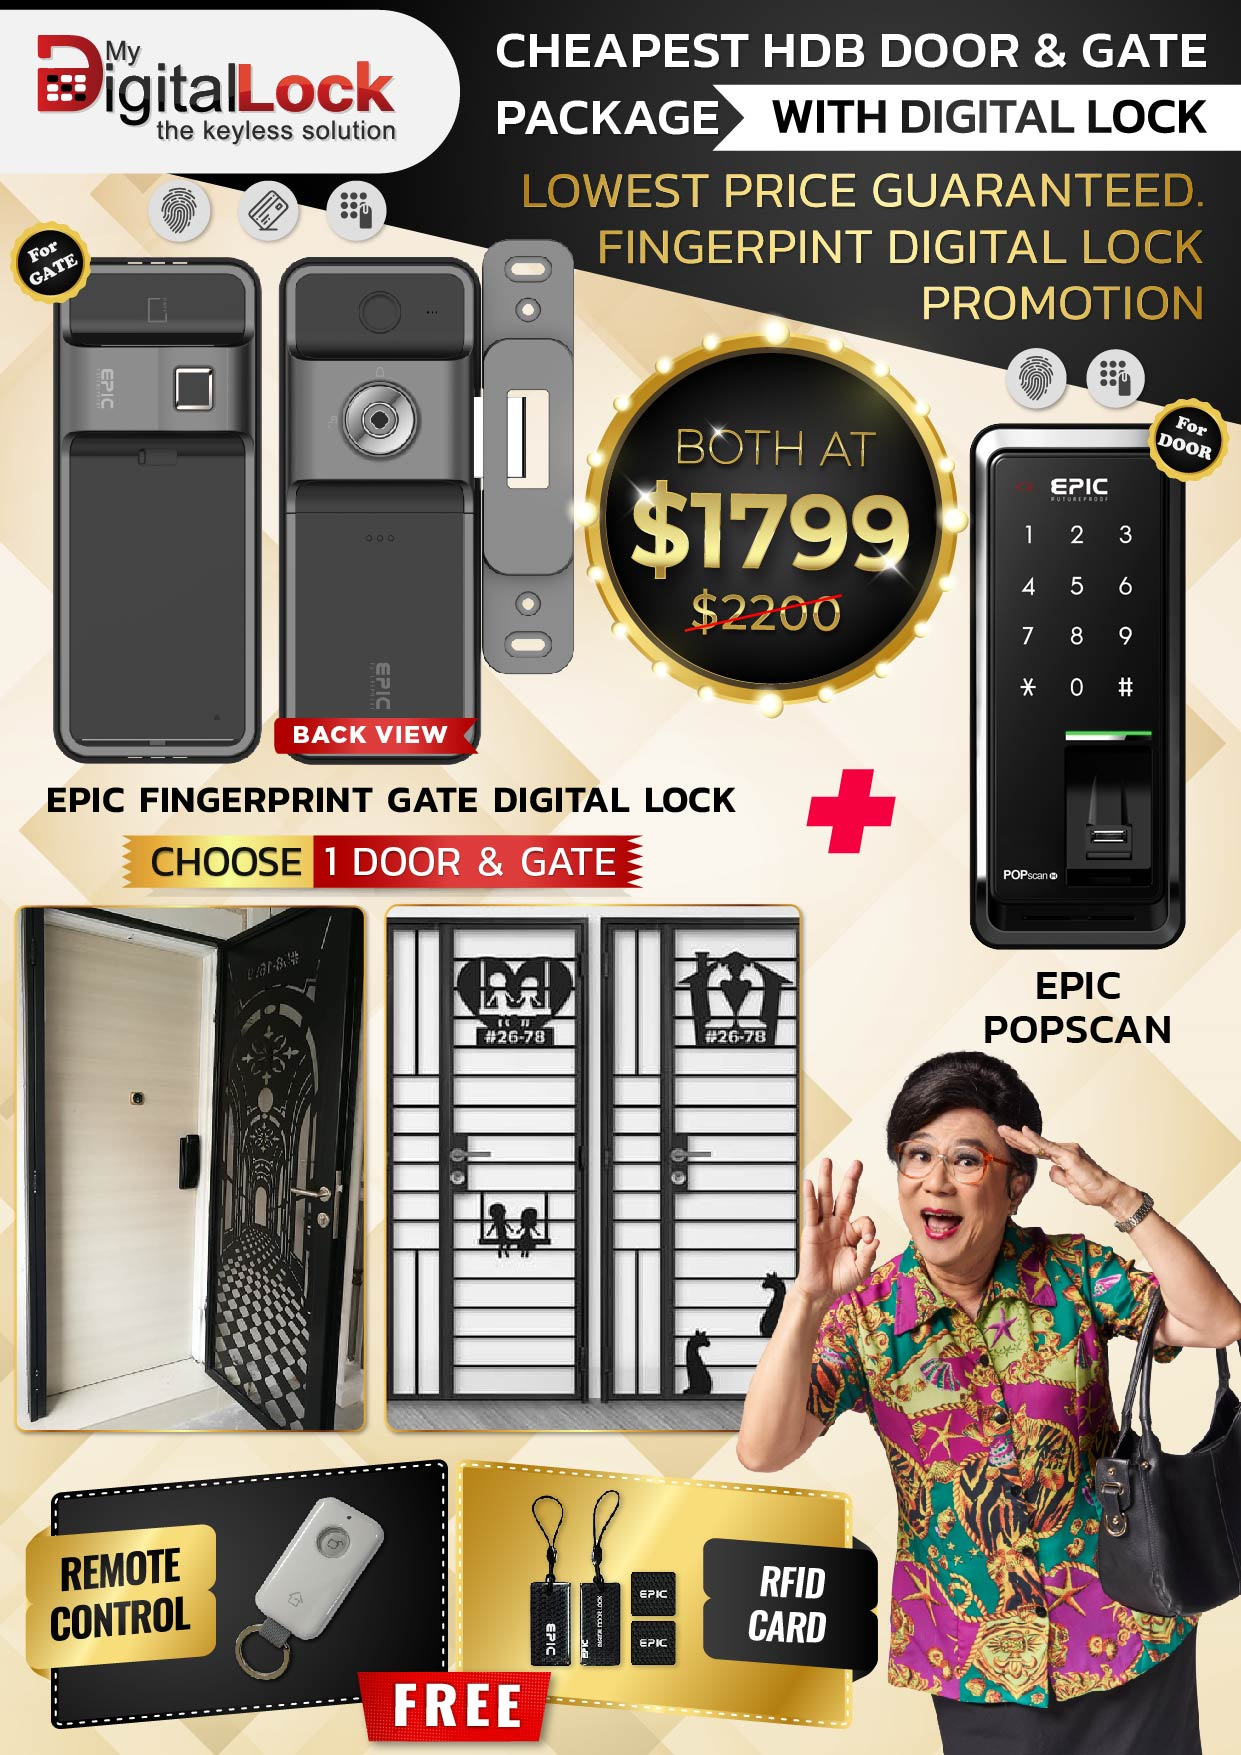 Cheapest HDB Door & gate package with Digitallock